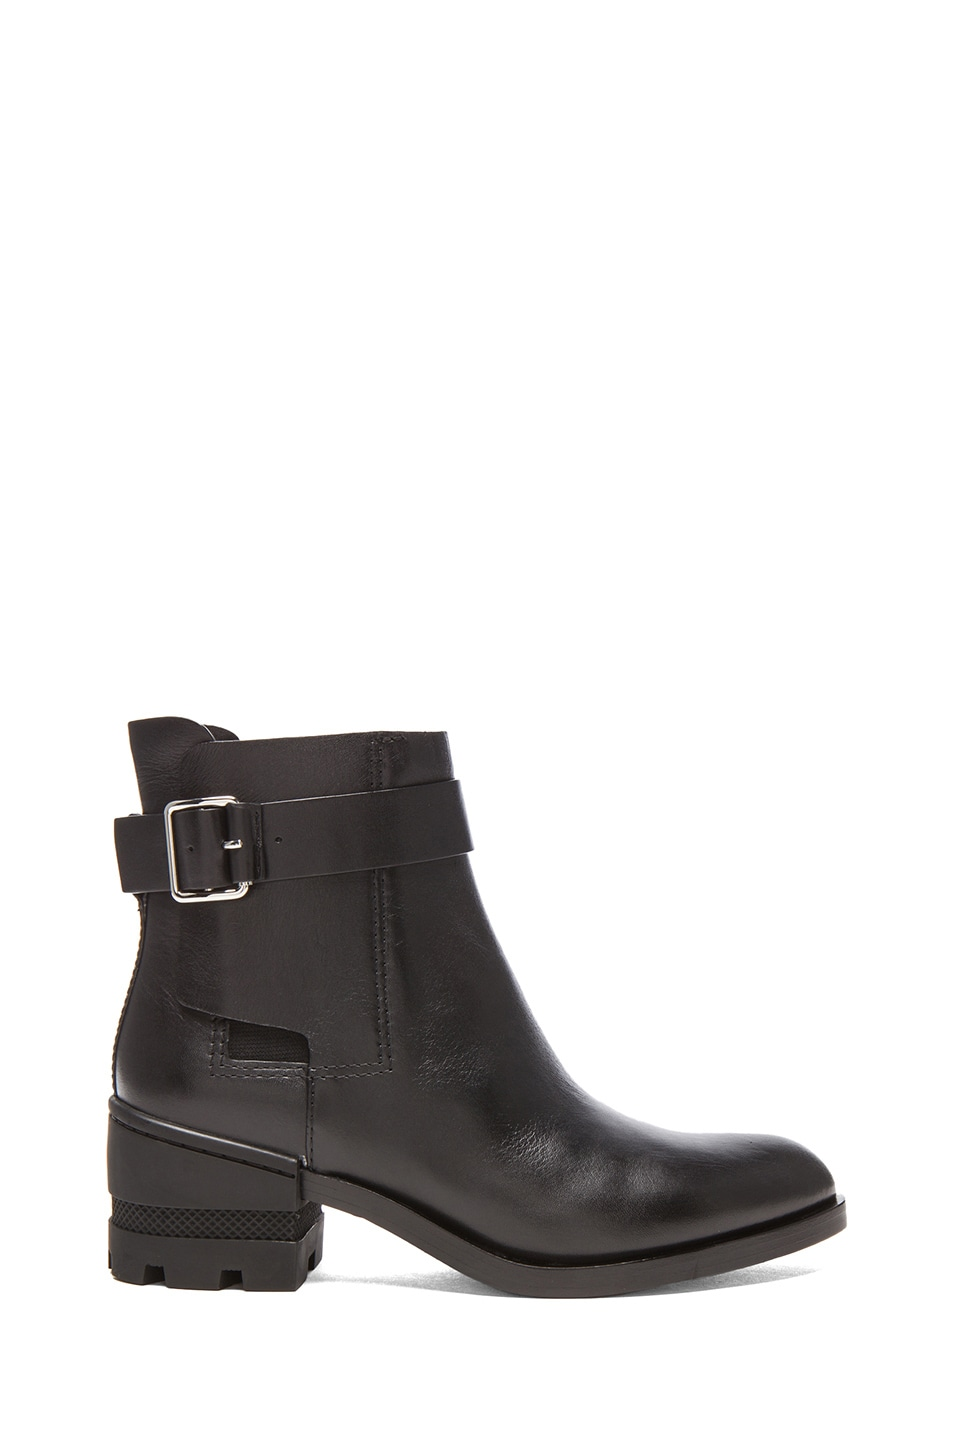 Image 1 of Alexander Wang Martine Leather Ankle Boots in Black